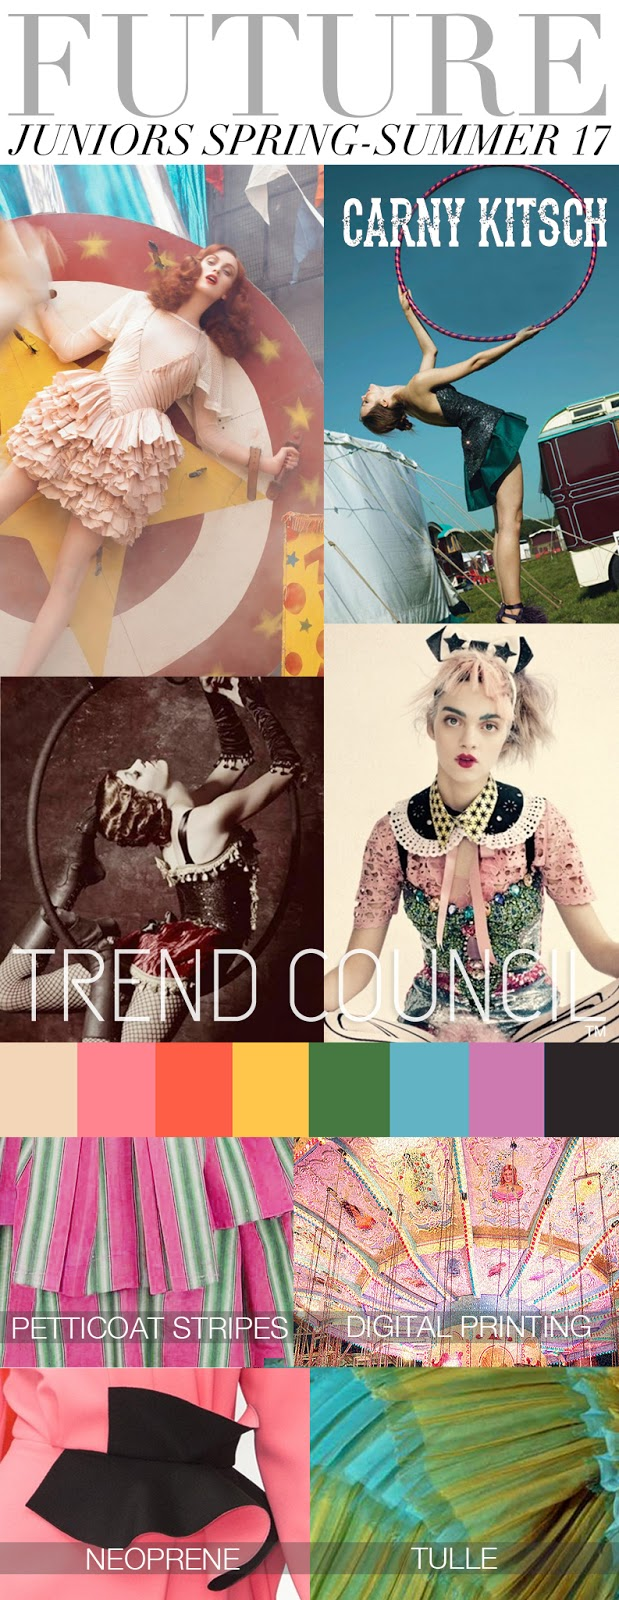 TRENDS // TREND COUNCIL - JUNIORS S/S 2017